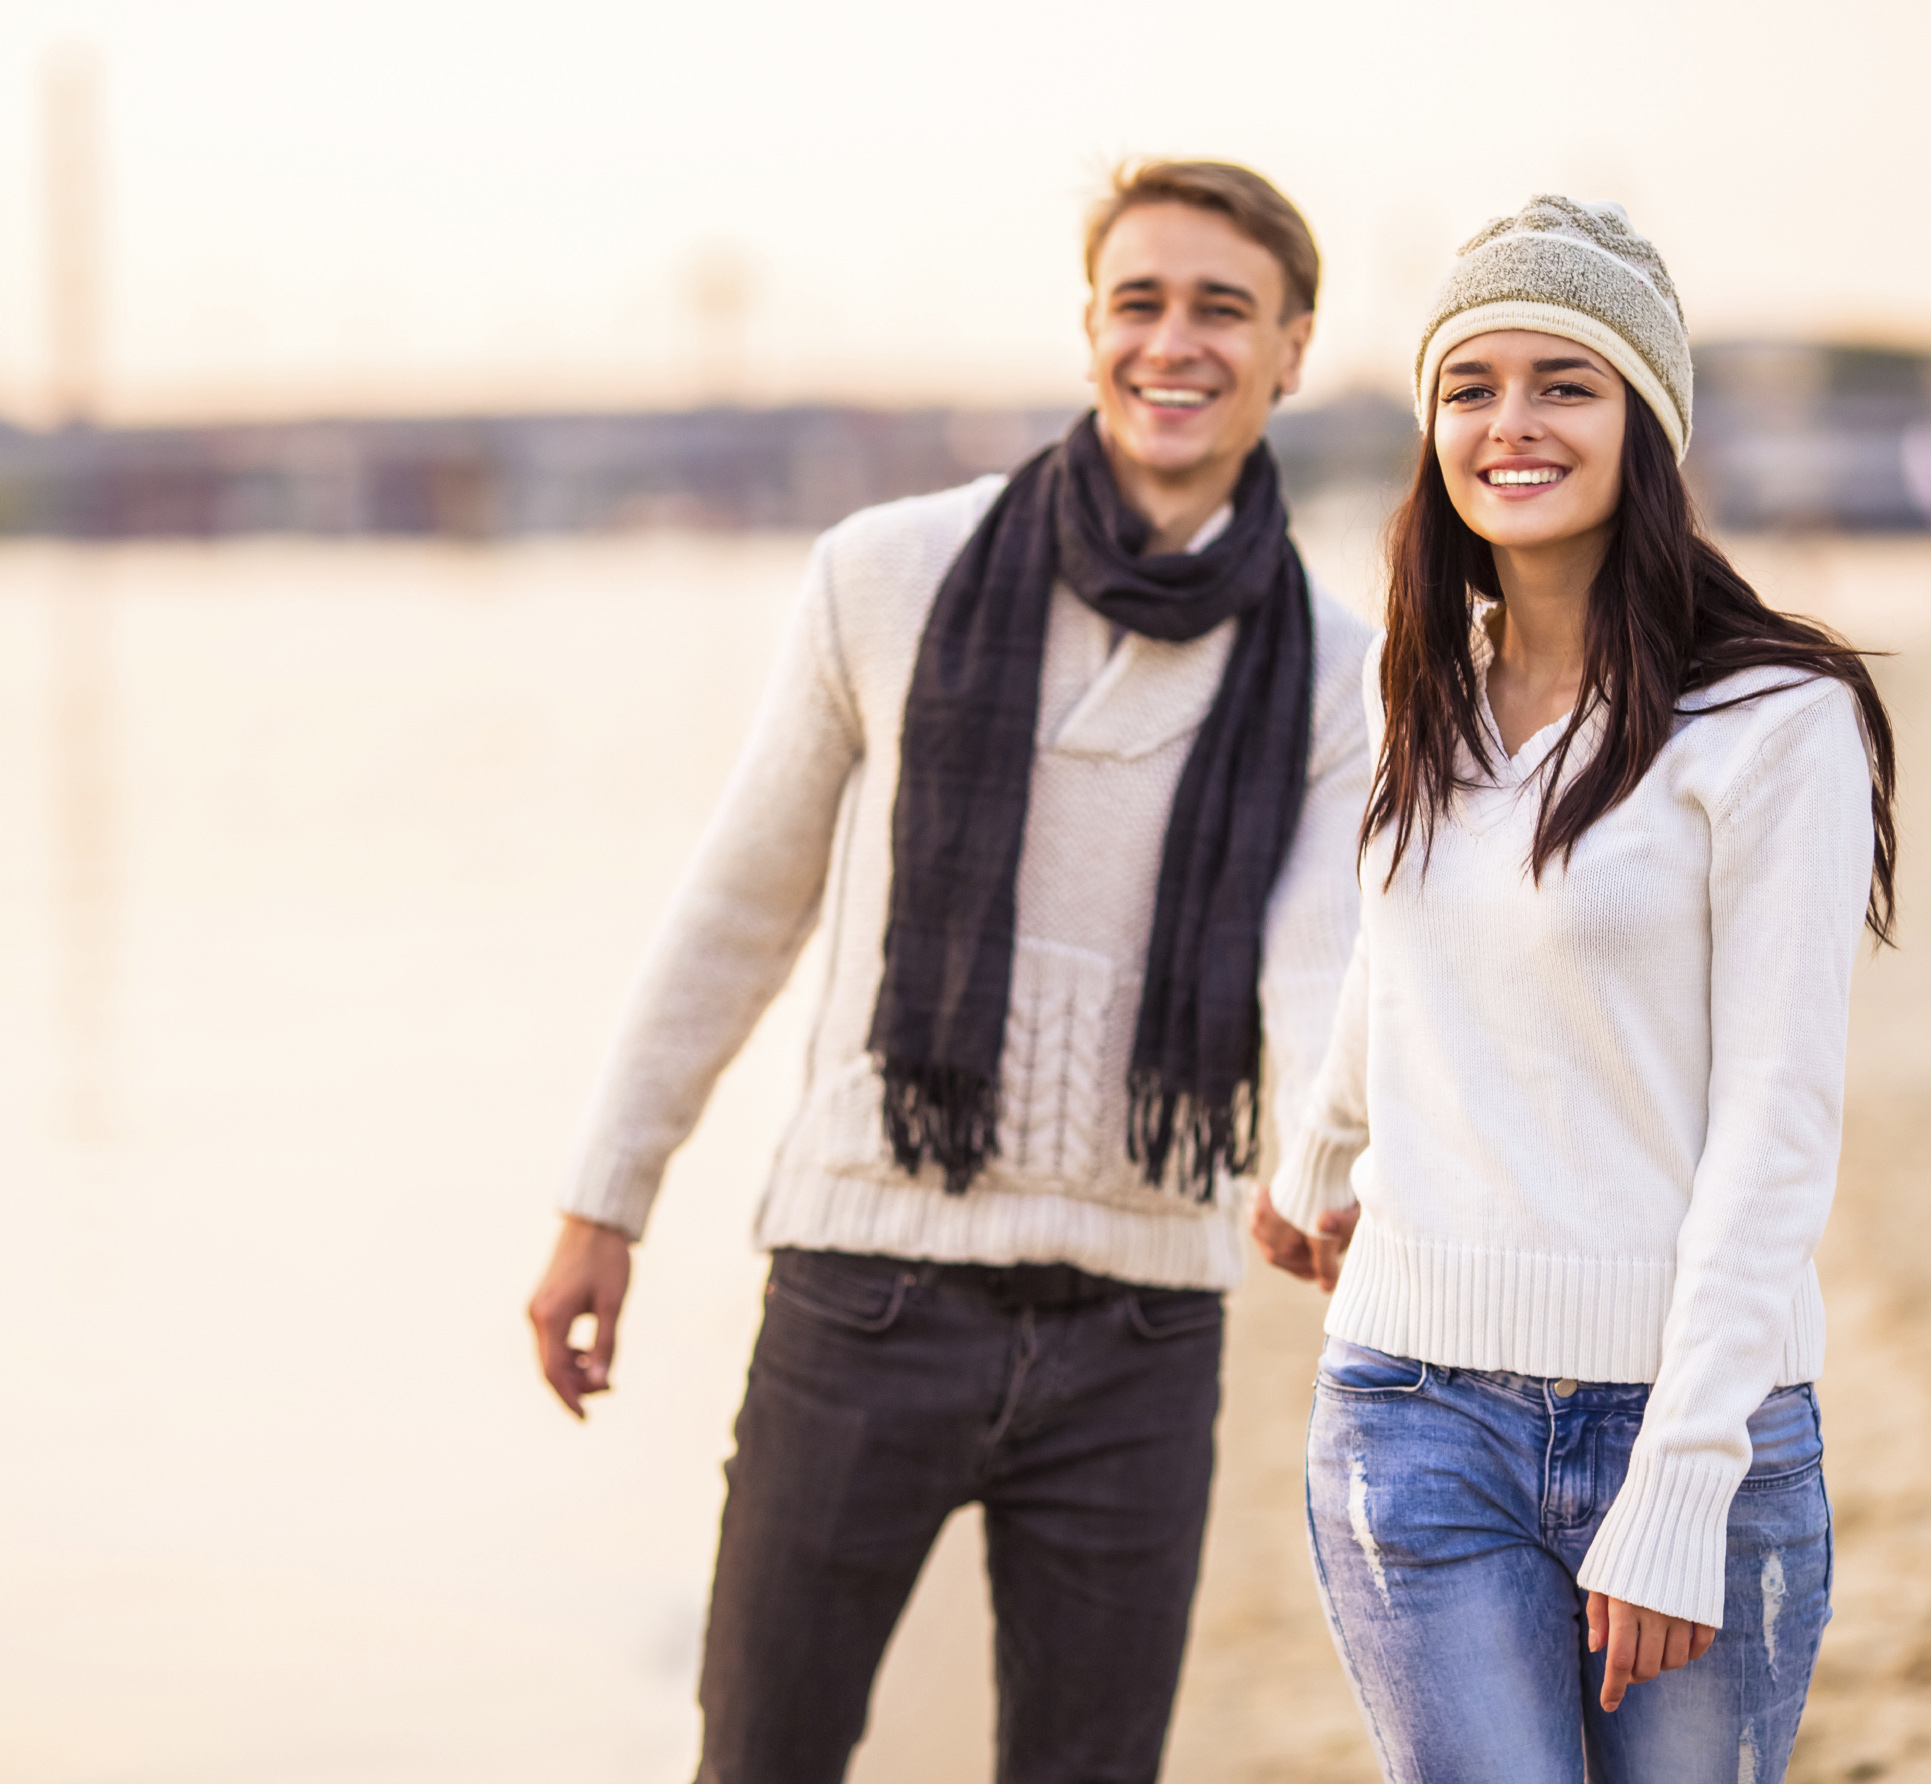 Dr. Gilbreath can help you straighten your smile.